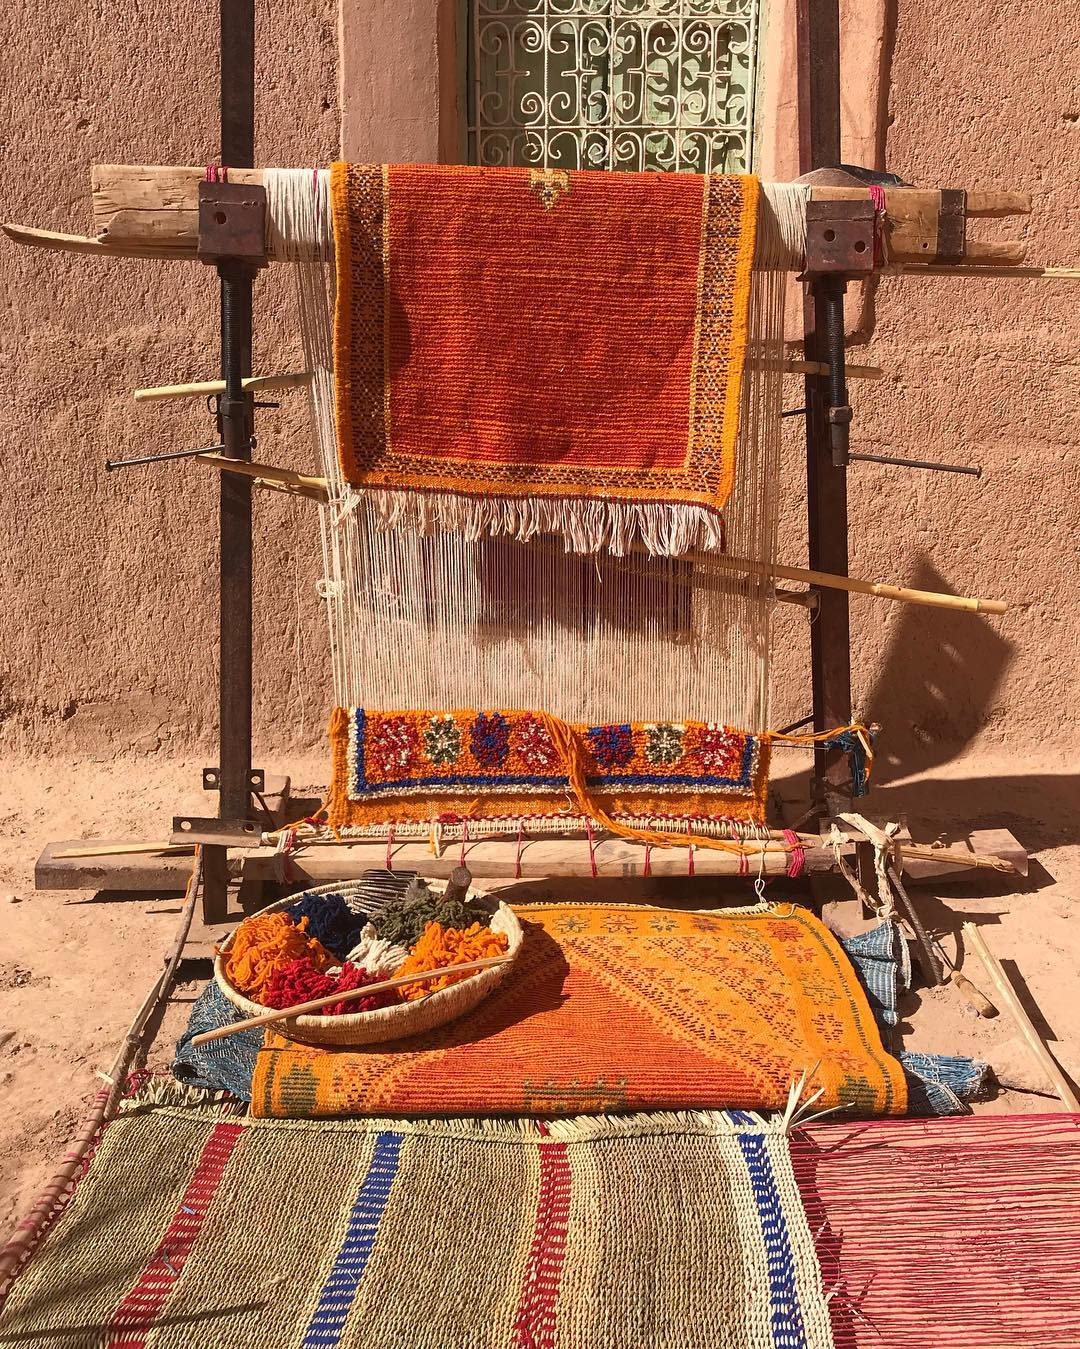 Artisan Craft - Explore with us the cultural roots and pure beauty behind the sustainable handmade crafts you'll find throughout Morocco.Learn More